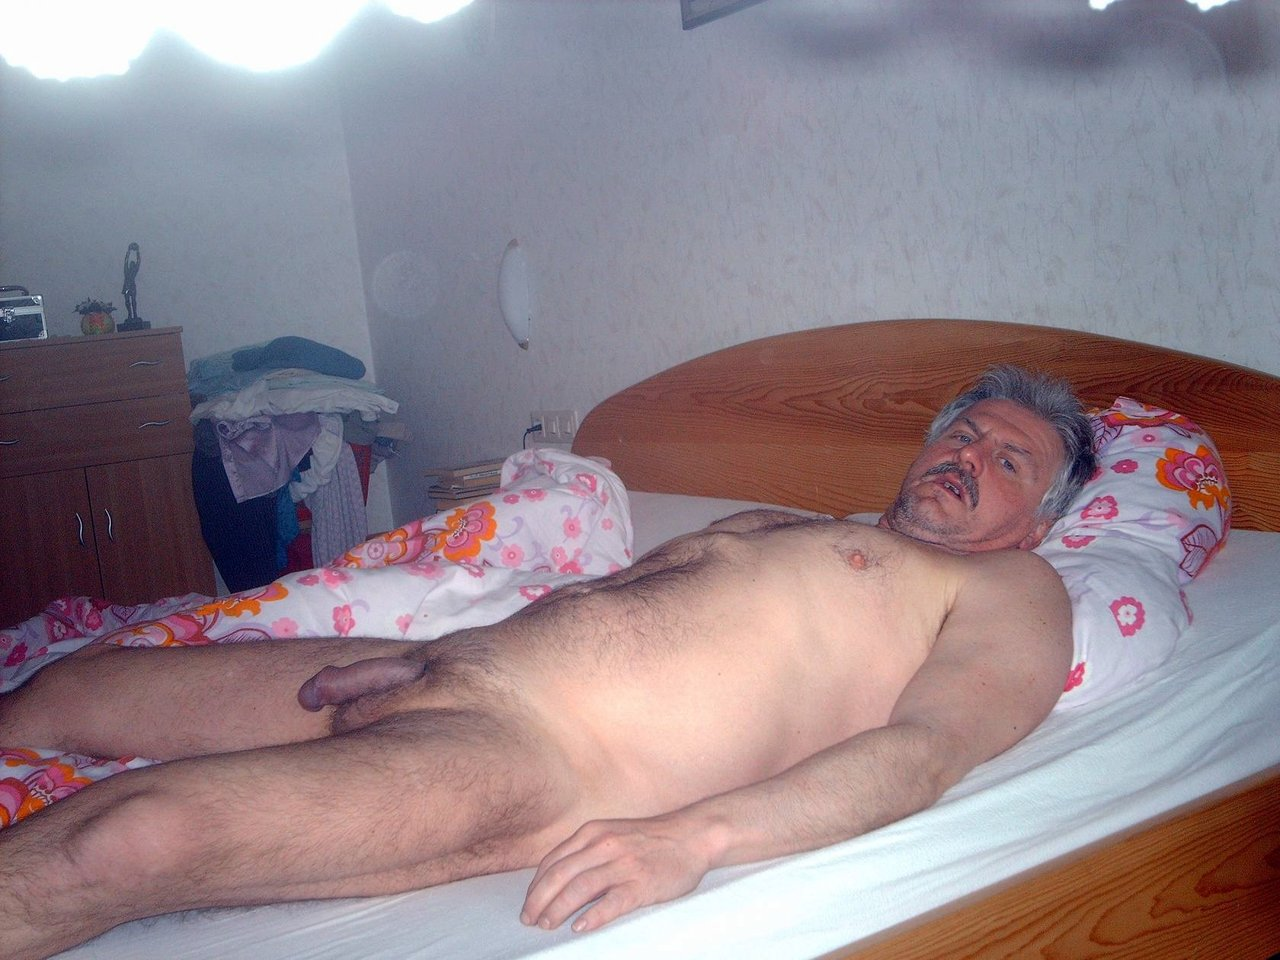 free mature gay males - men 40 mature male gay - daddy on the bed